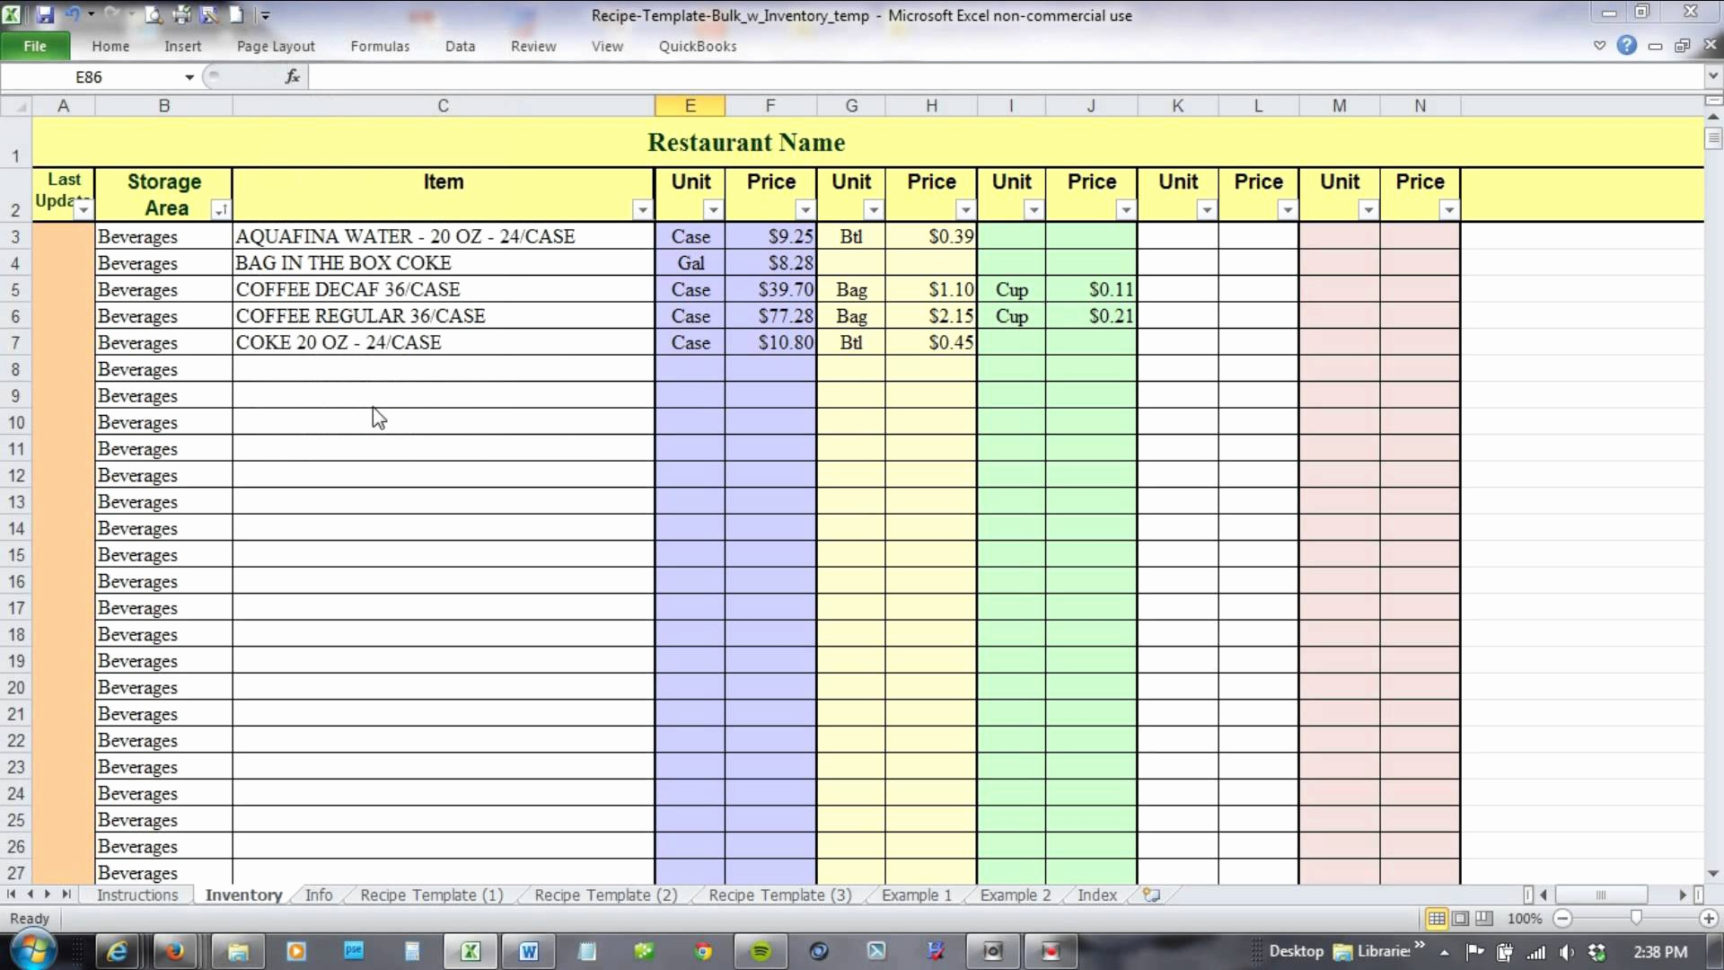 Inventory Management In Excel Free Download Inspirational Inventory Throughout Inventory Management System In Excel Free Download